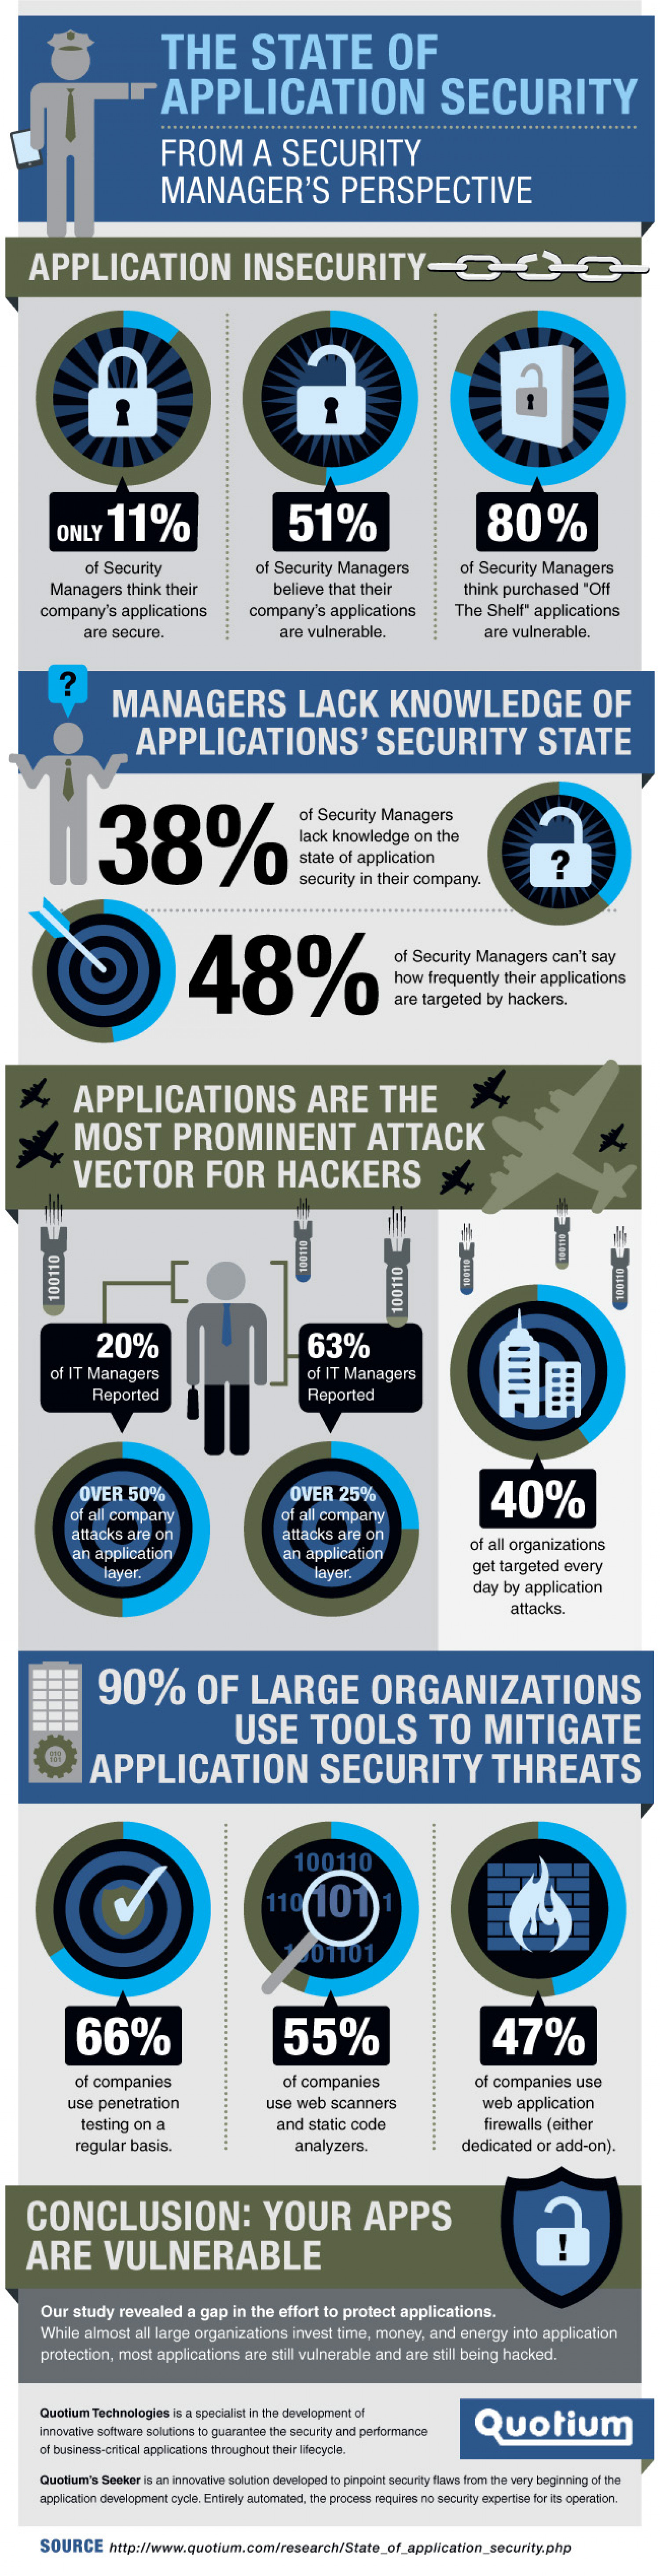 The state of Application Security from a security manager's perspective Infographic